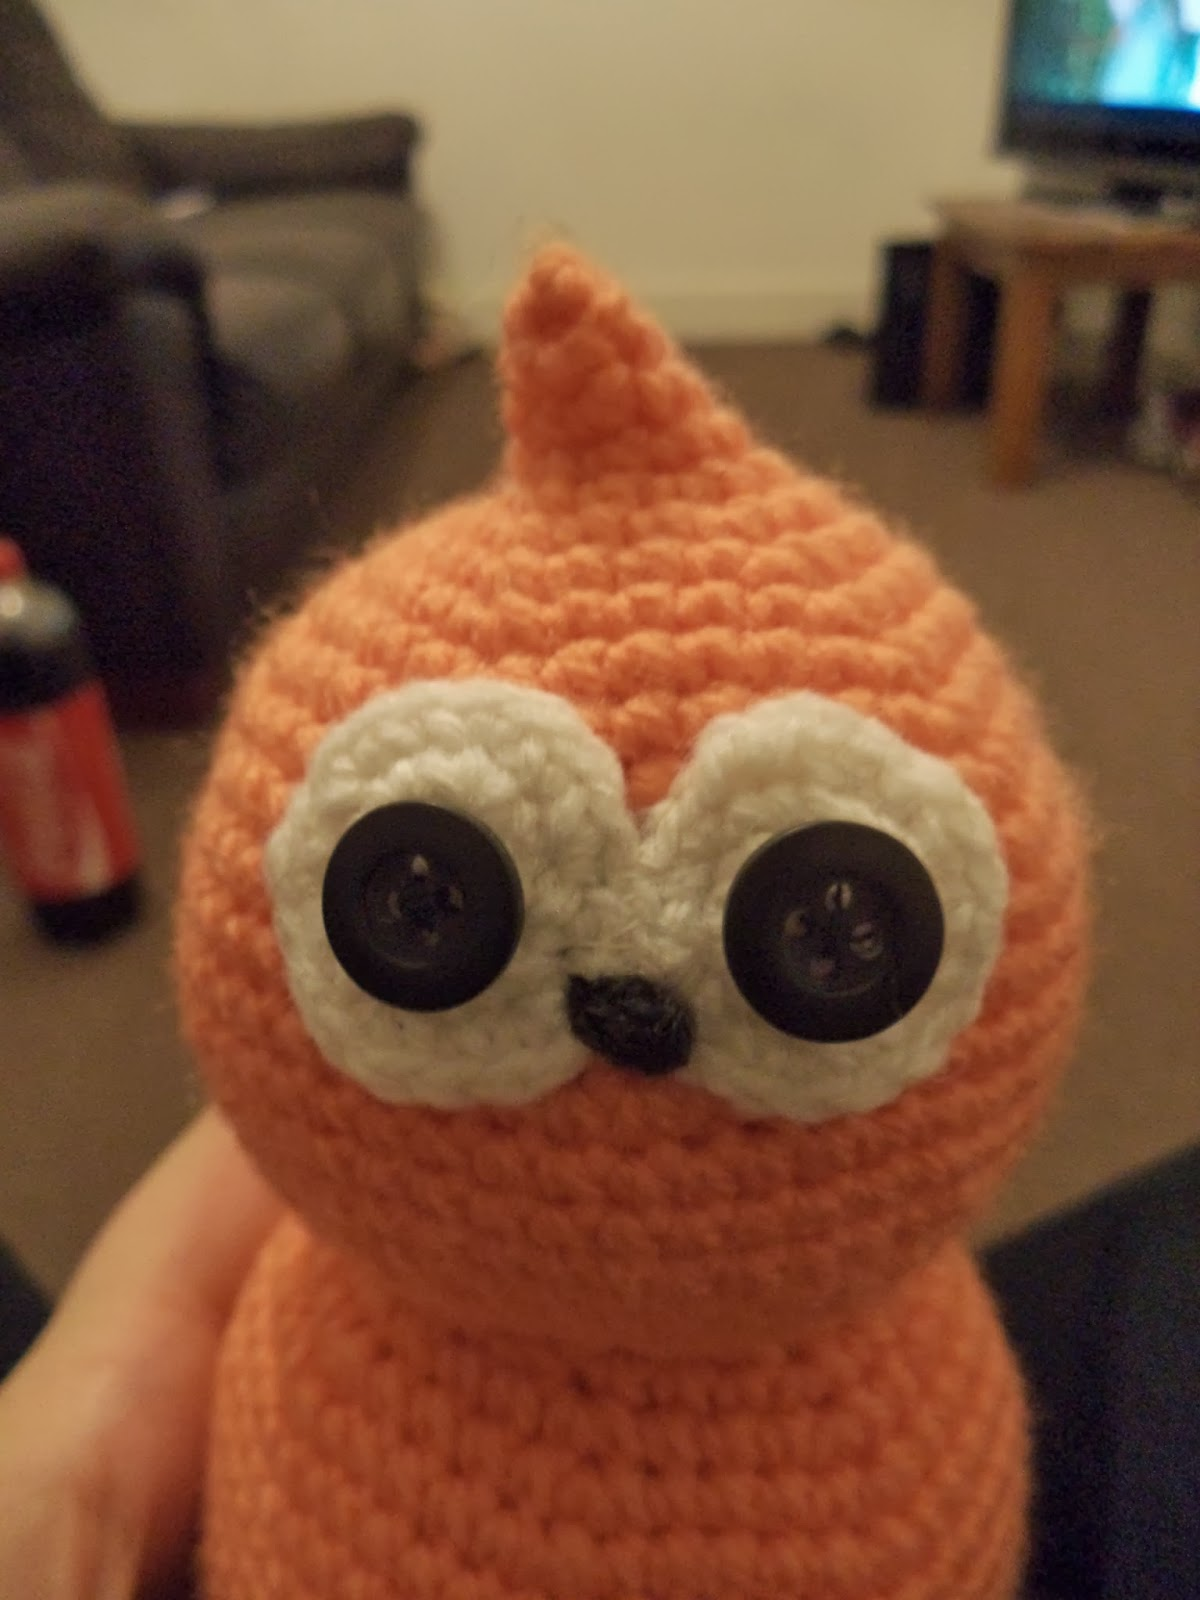 Serial Thriller: An orange poo named Zingy